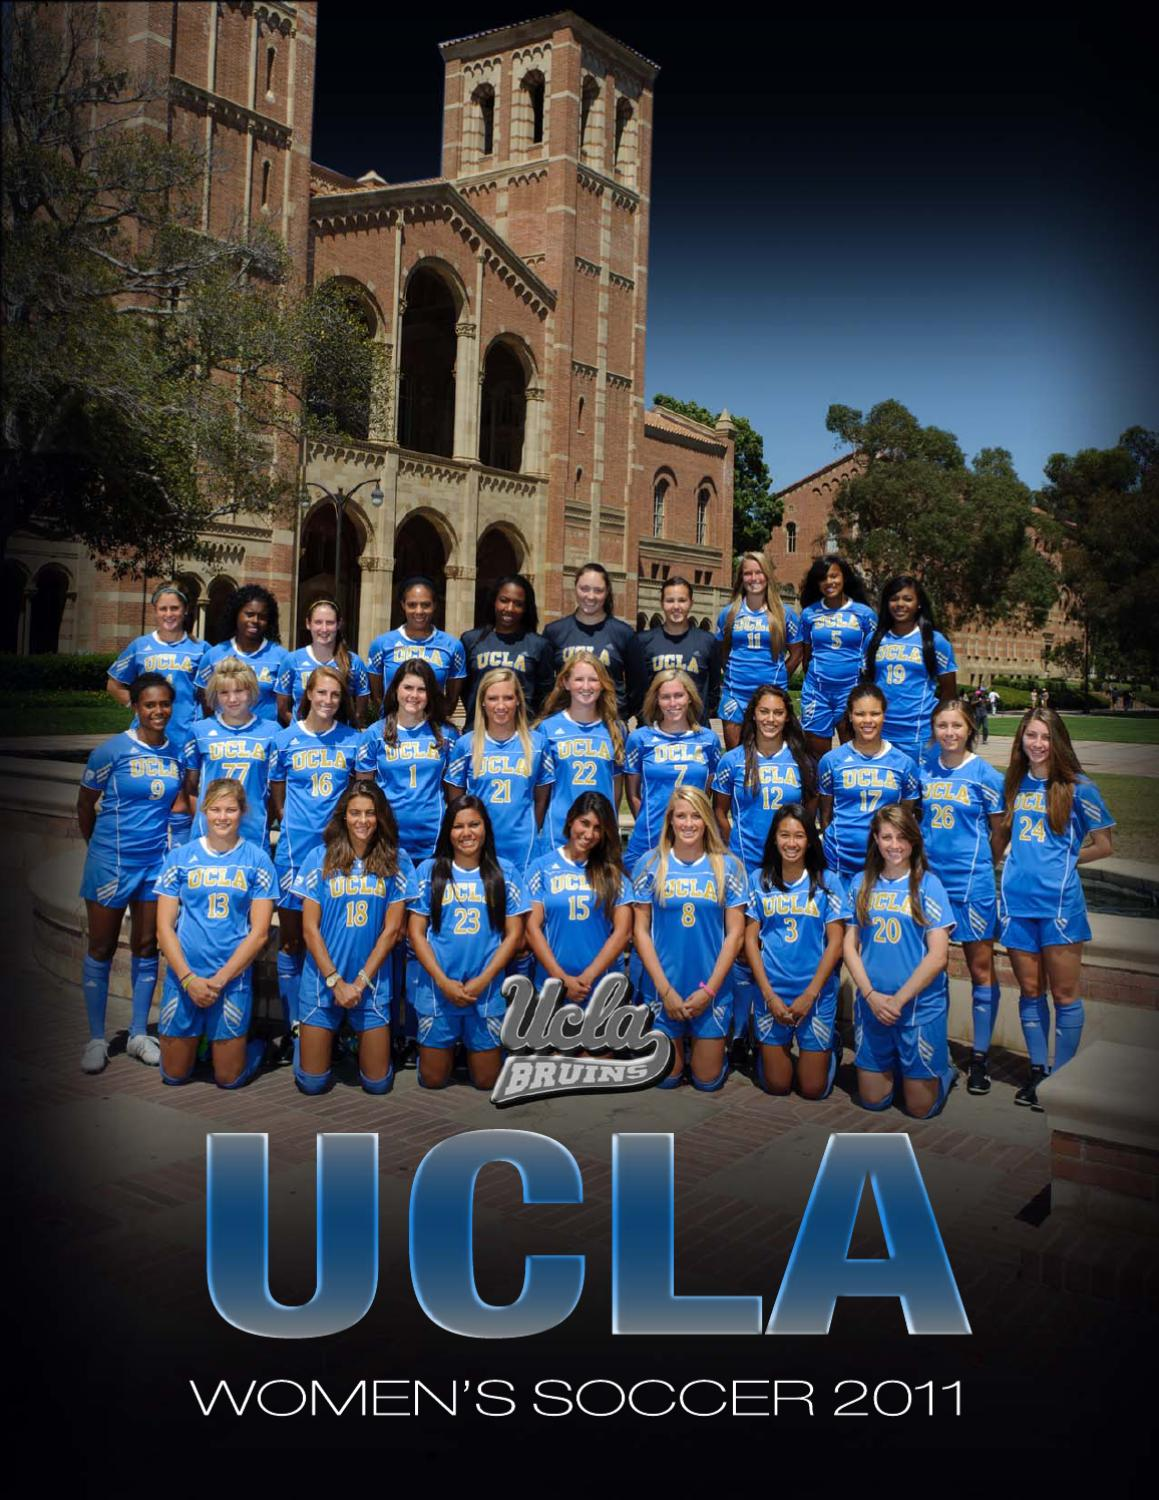 9cbf784f056 2011 UCLA Women s Soccer Media Guide by UCLA Athletics - issuu